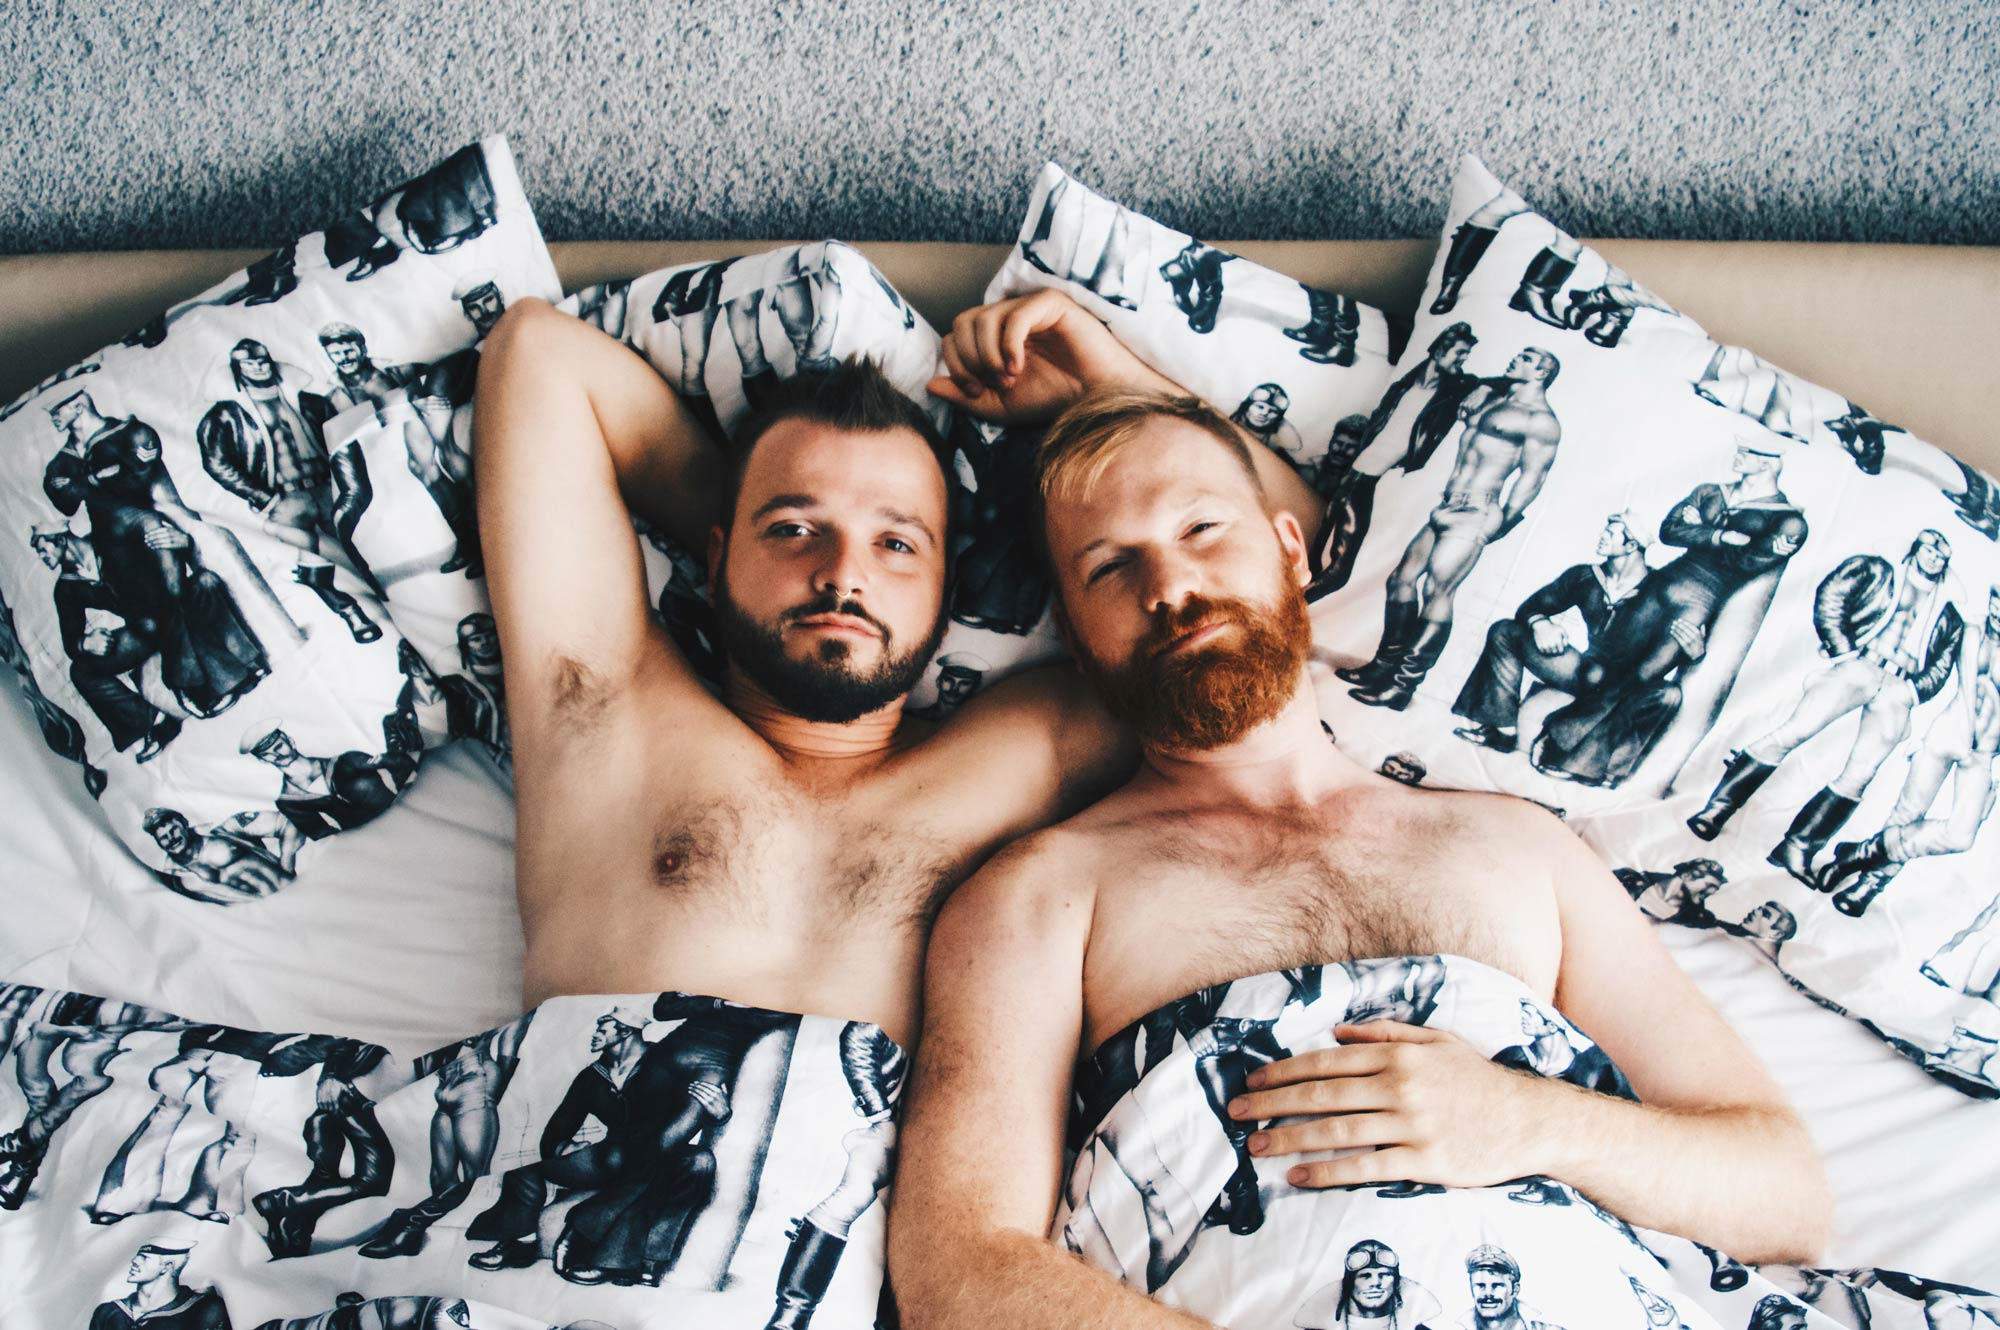 Tom of Finland Paket sexy naked couple of men Gay Travel Blogger half naked Good morning out of our Tom of Finland bed | Klaus K Hotel Helsinki Gay-friendly Tom of Finland Package © Coupleofmen.com